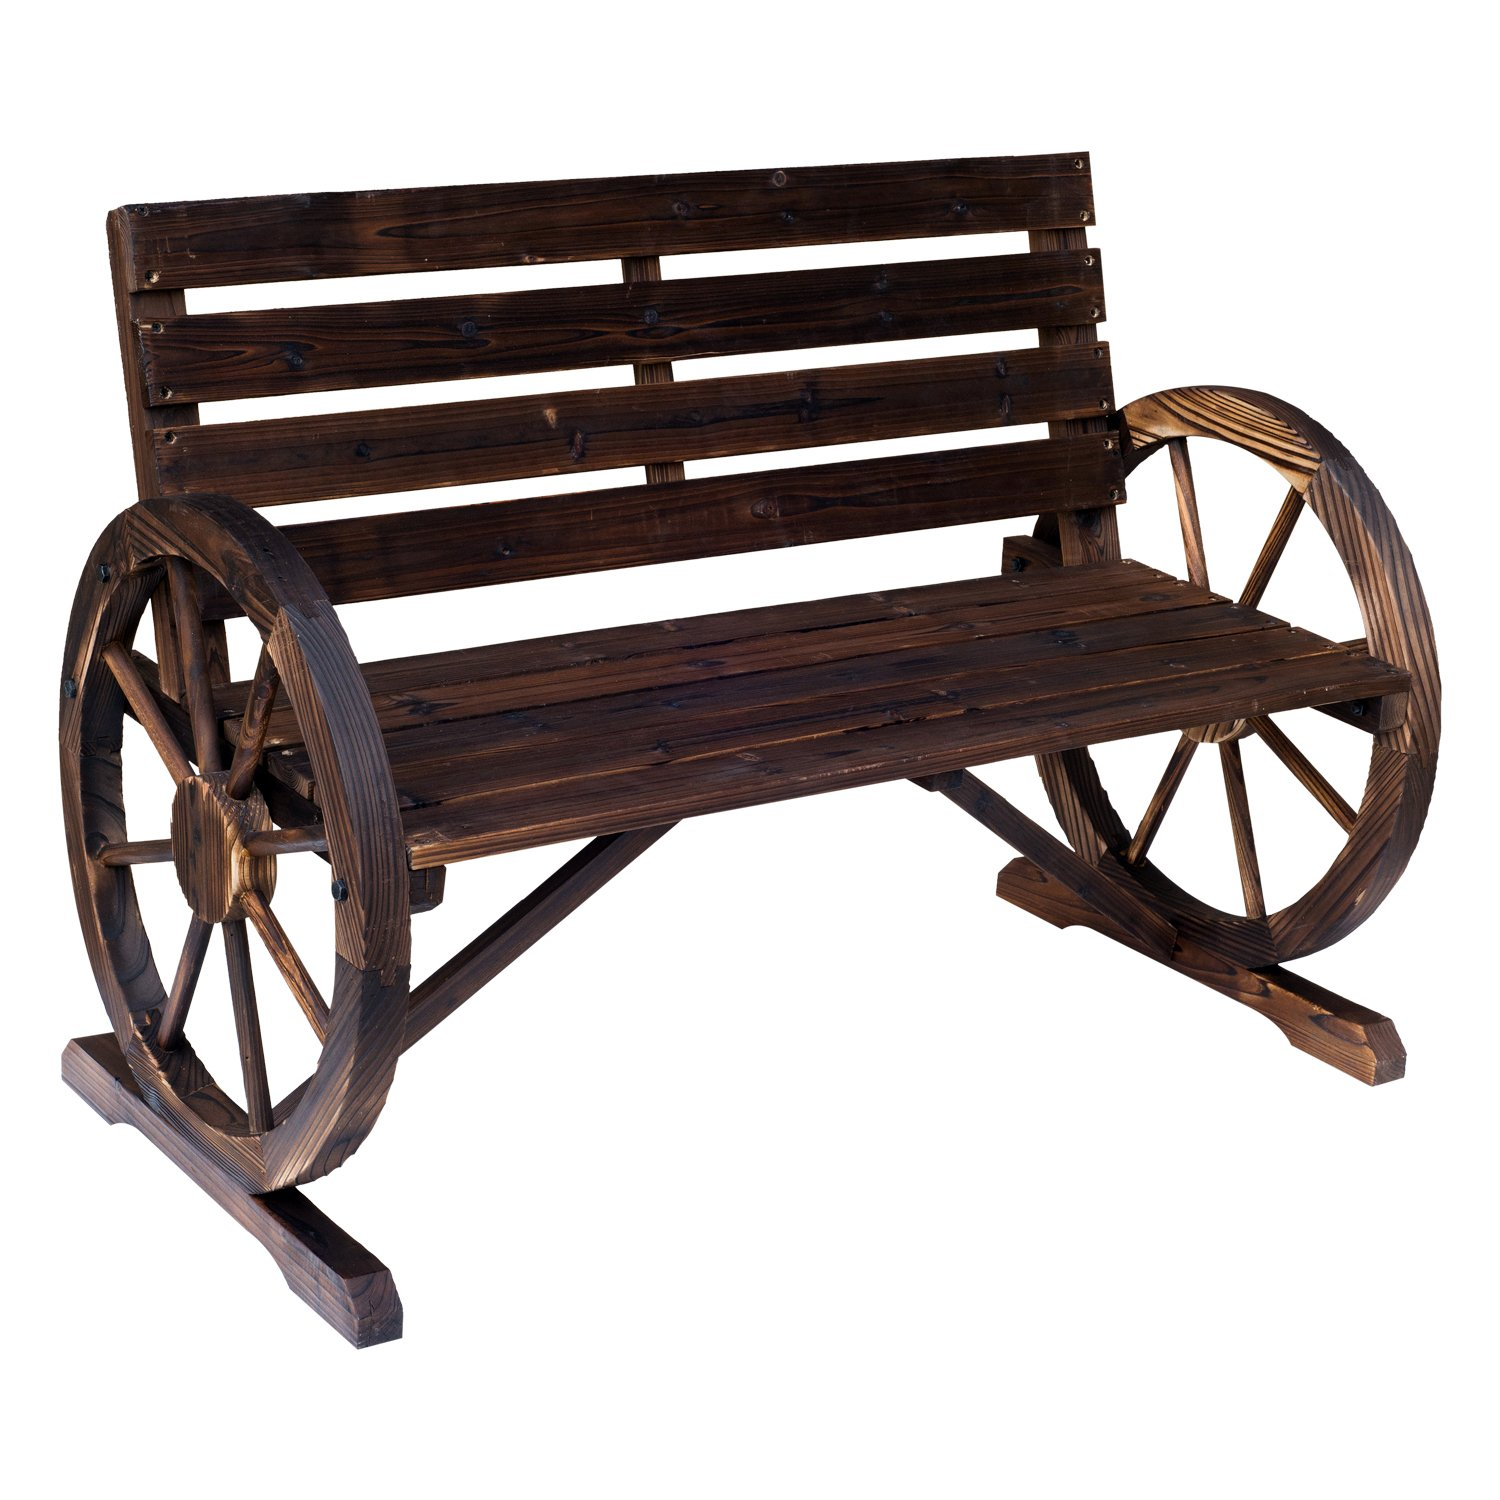 Incredible Outsunny Rustic Wooden Outdoor Patio Wagon Wheel Bench Seat Interior Design Ideas Gentotryabchikinfo